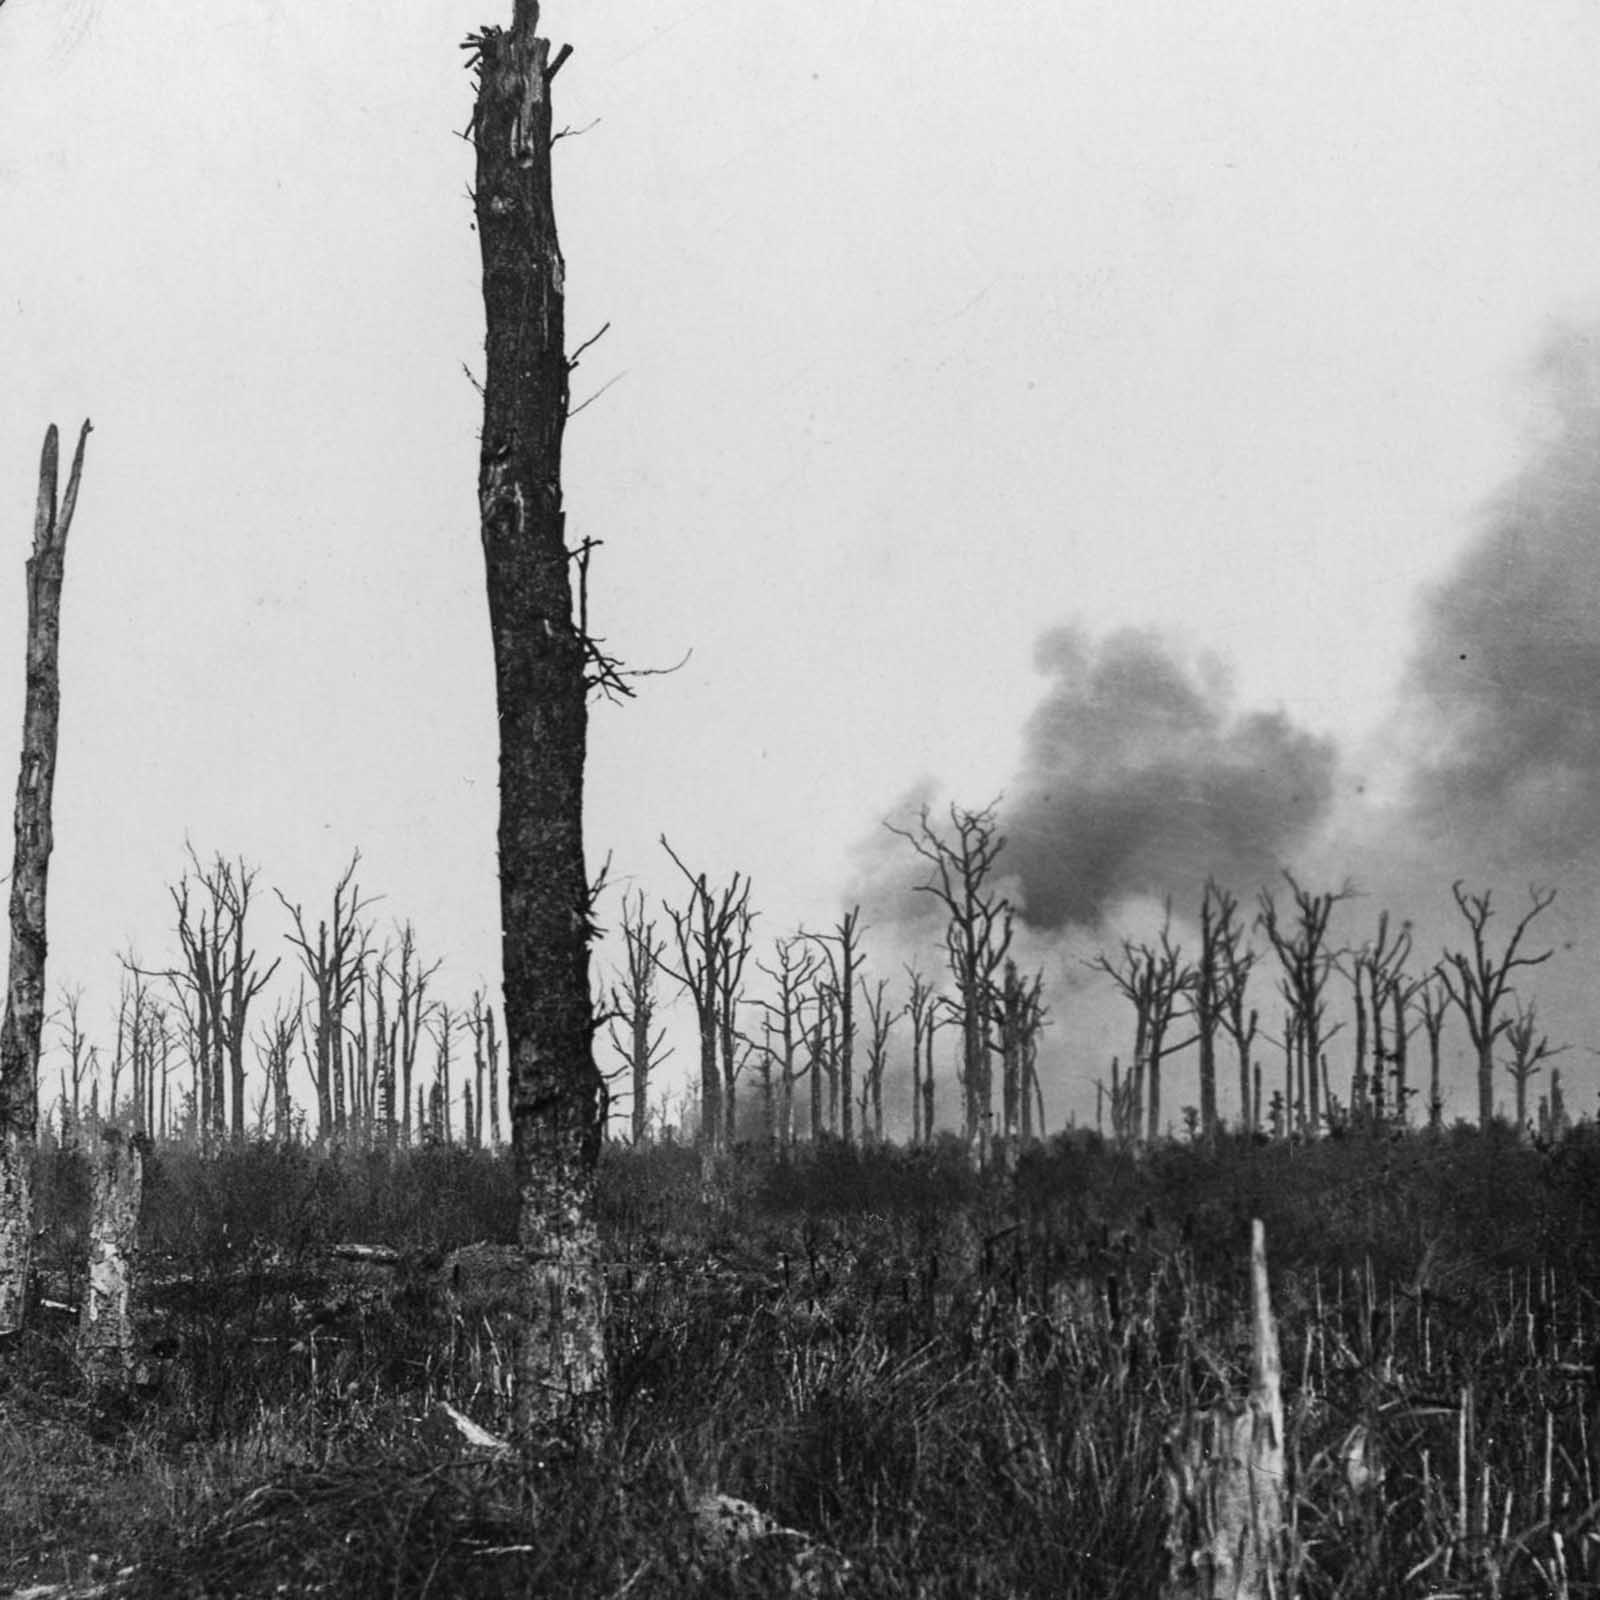 Mametz Wood was the objective of the 38th (Welsh) Division at the Battle of the Somme. The division took 4,000 casualties capturing the wood.